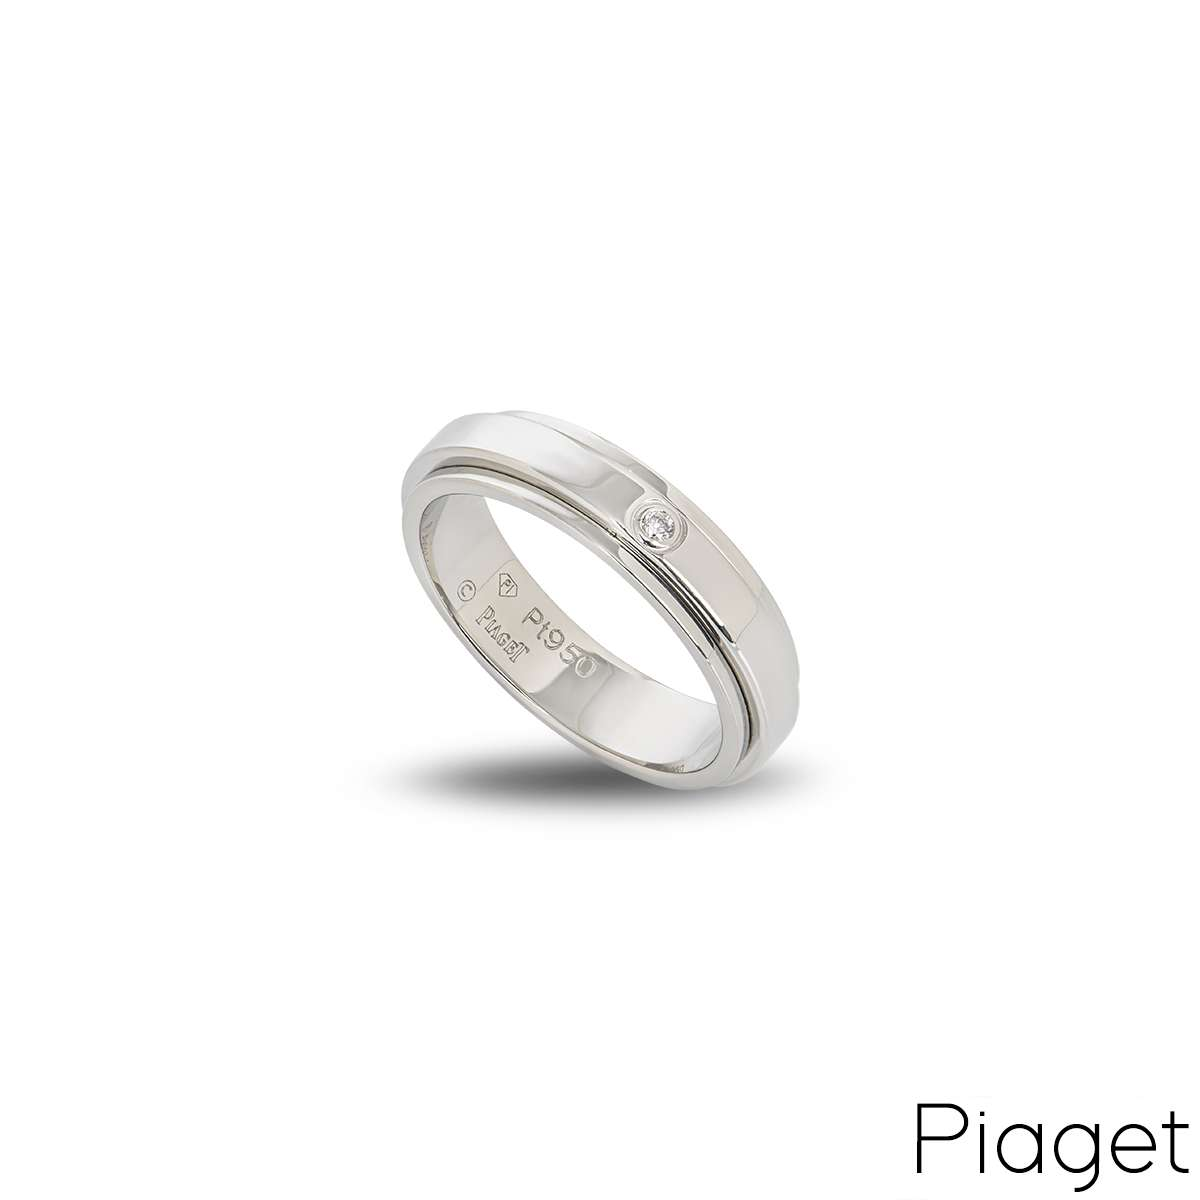 Piaget Diamond Set Possession Ring in Platinum?